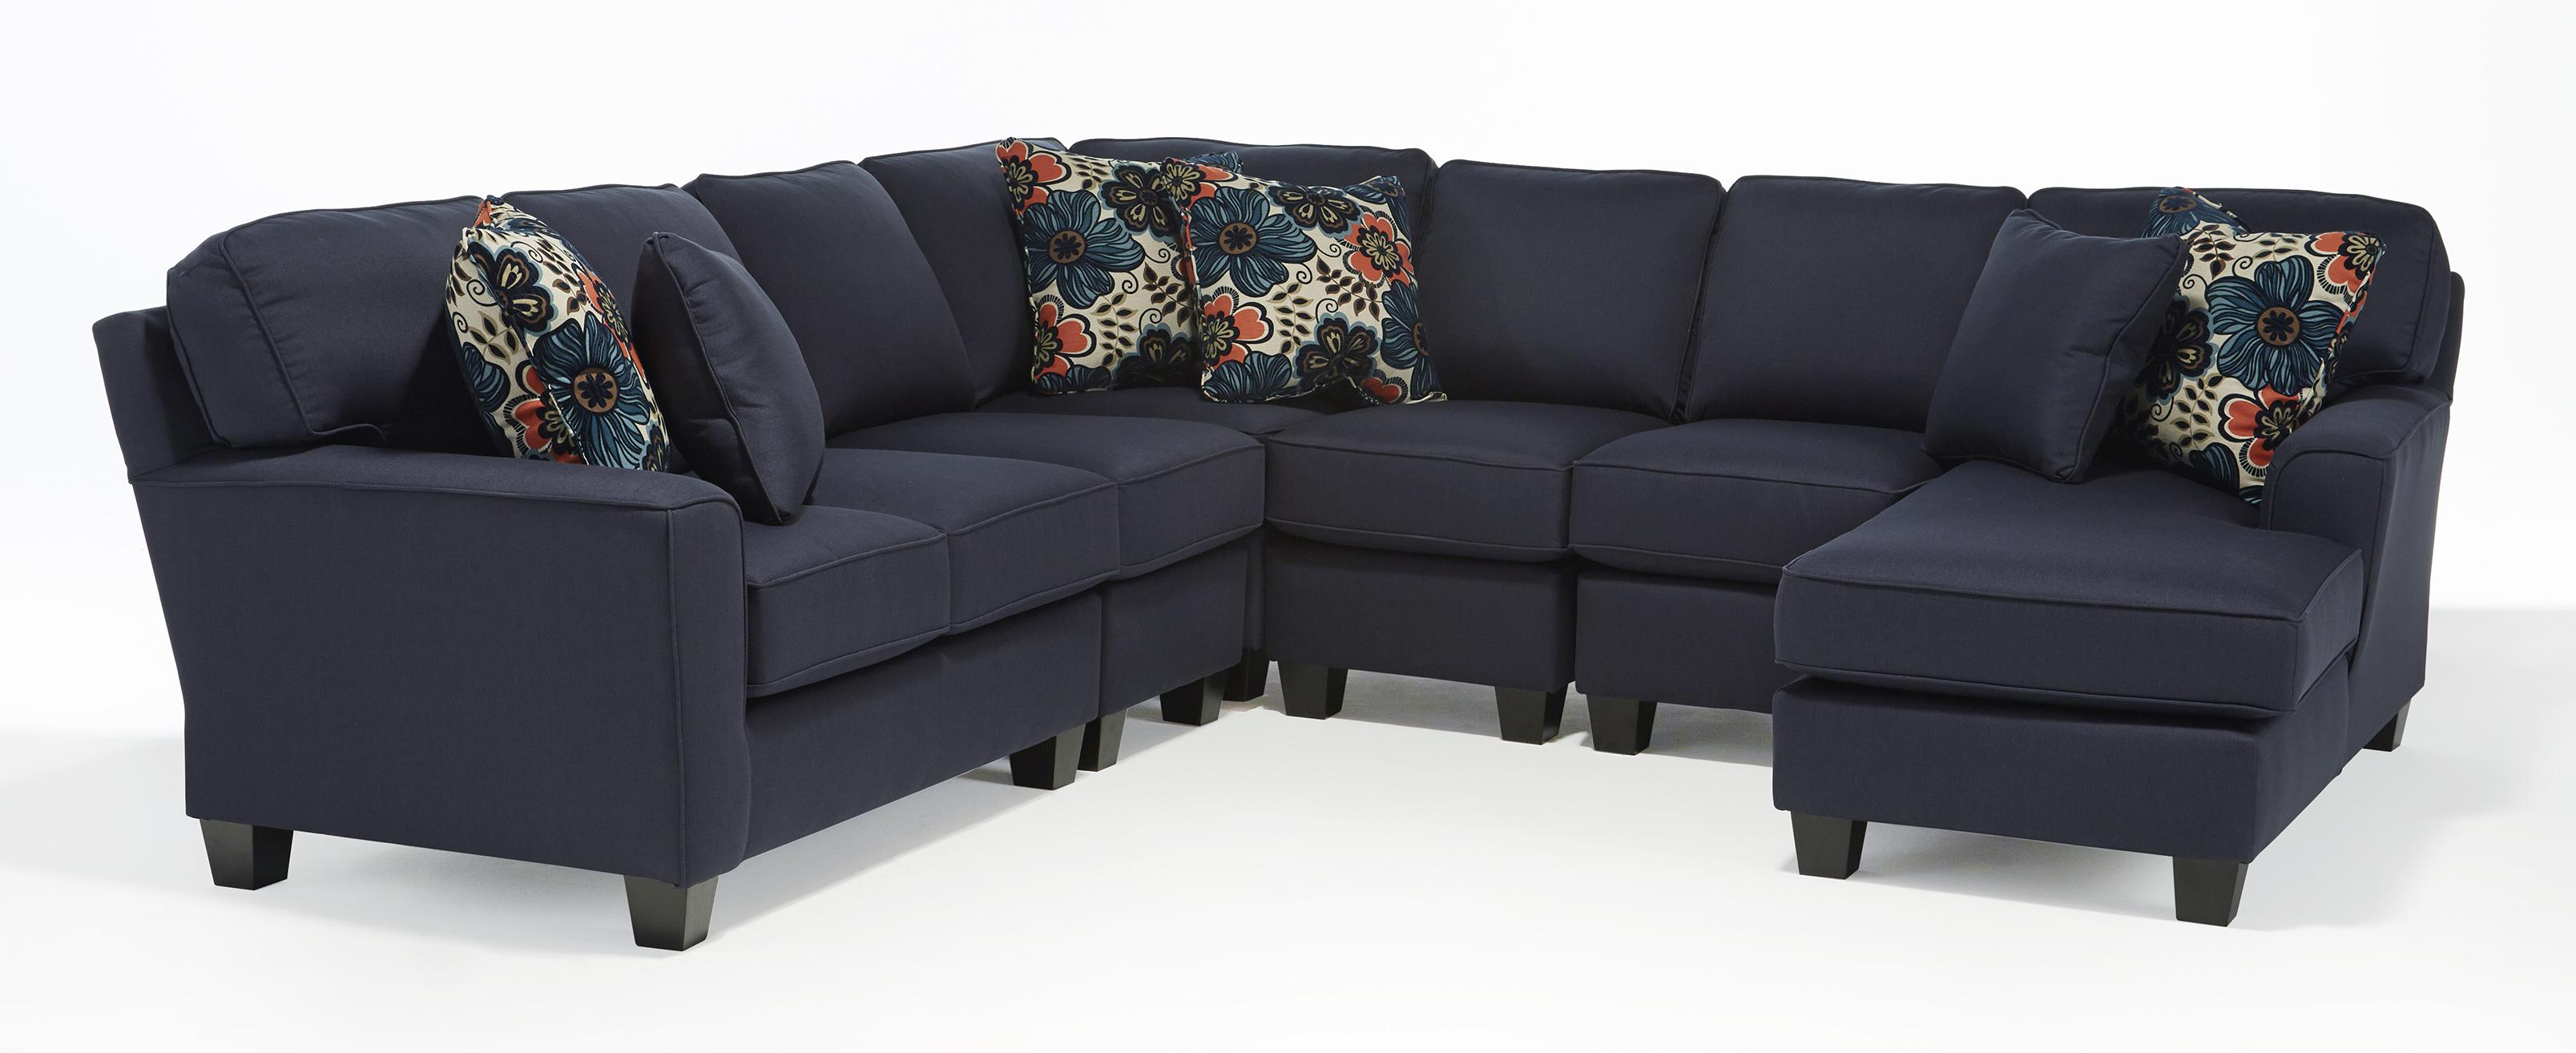 Vendor 411 annabel five piece customizable sectional sofa for 5 pc sectional sofas